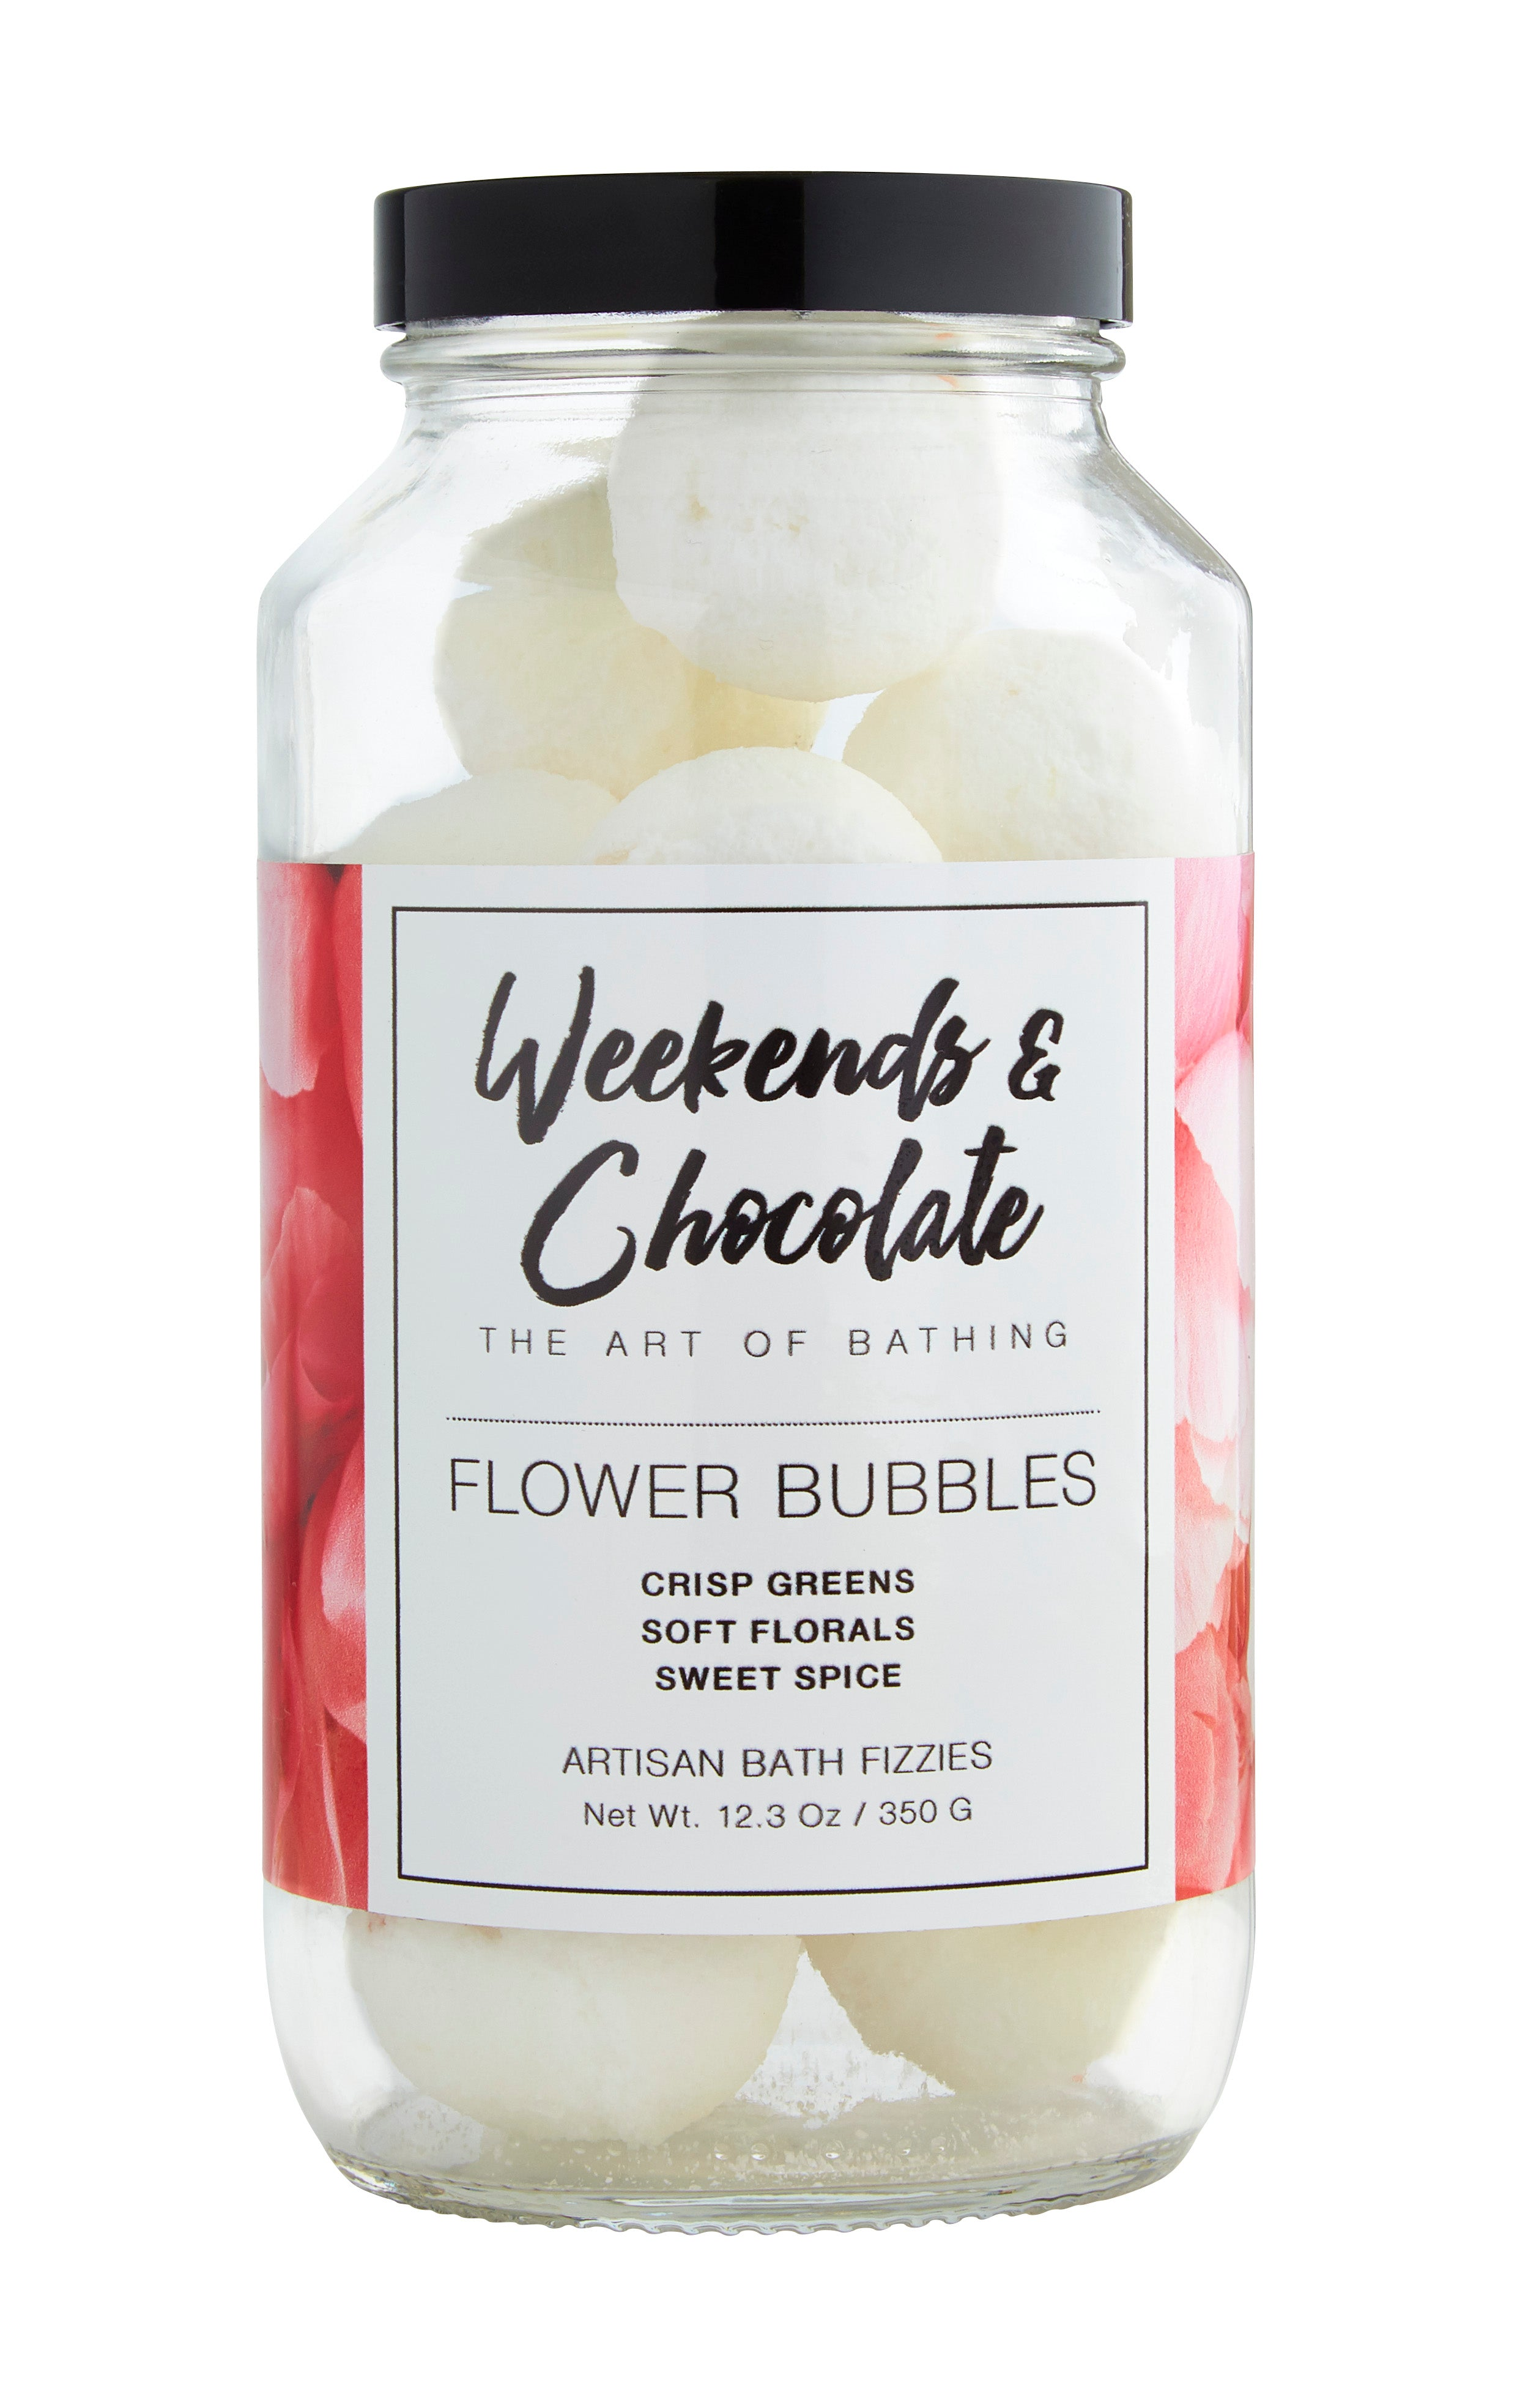 Flower Bubbles Bath Fizzies